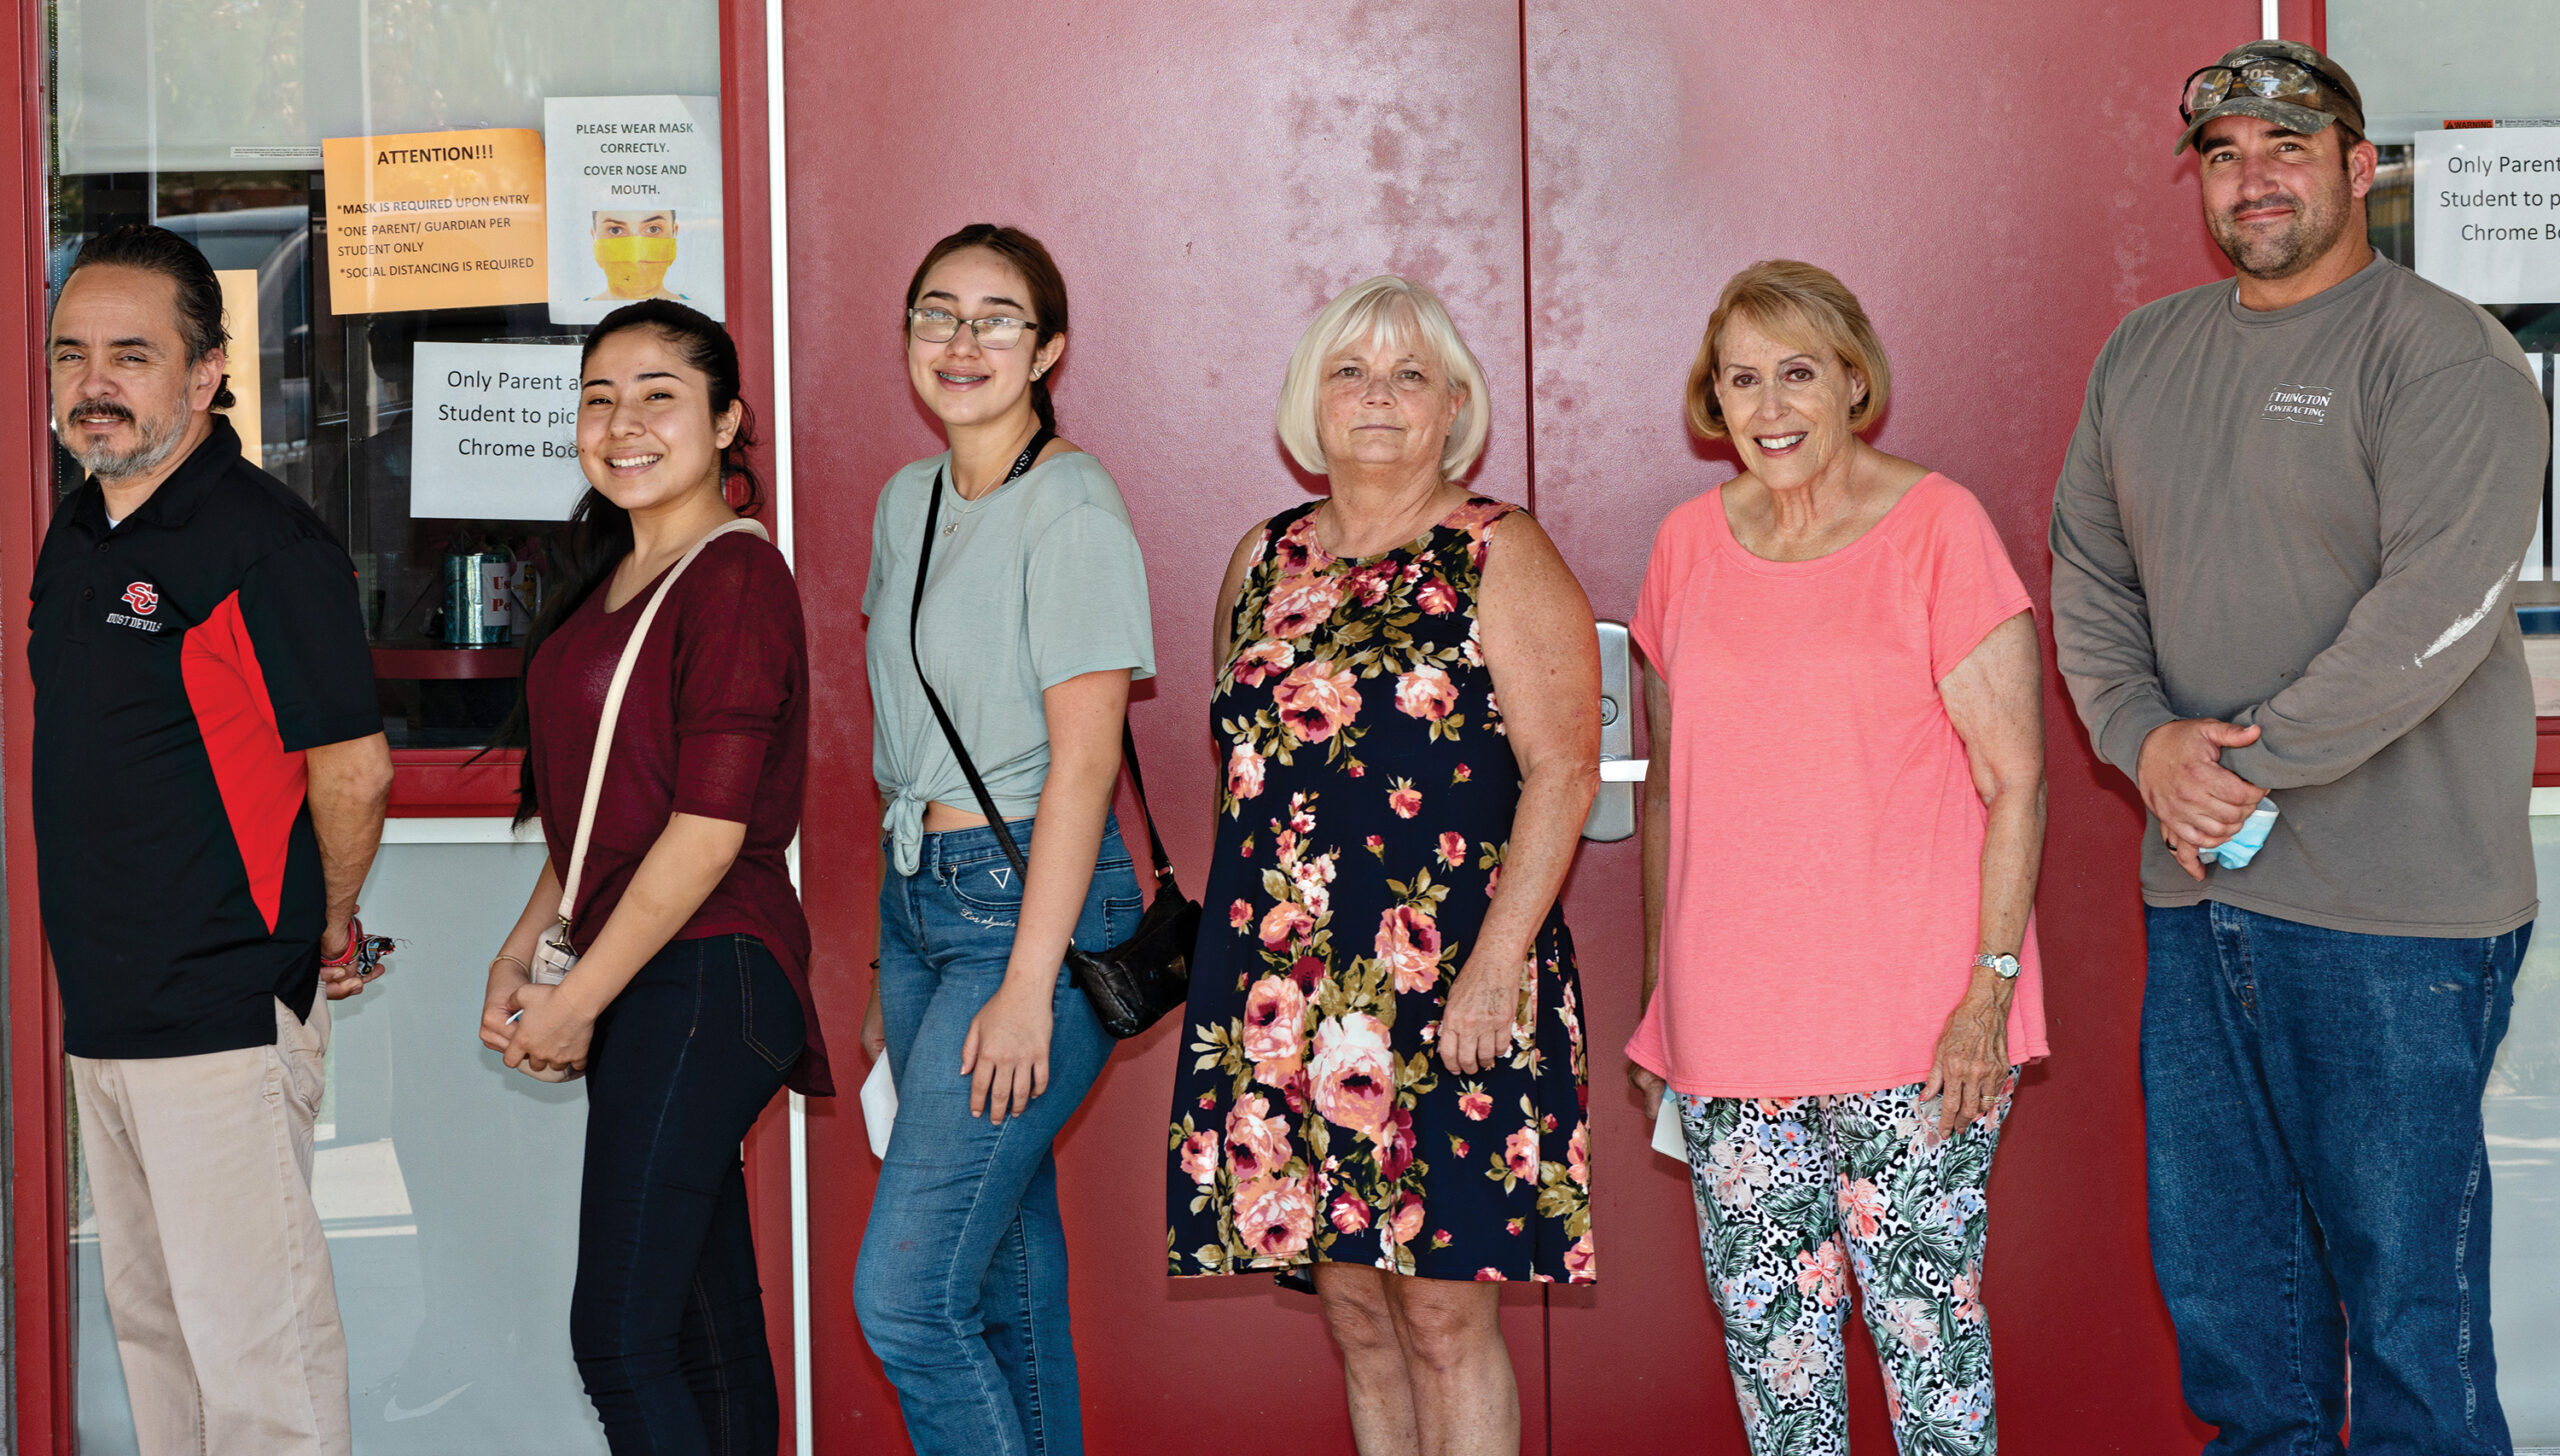 Counselor Frank Jimenez, Magnolia Ramos-Quezada, Stephanie Quinones, Co-Chair Debbie Maxwell,Co-Chair Ruby Herman, and Lily Lea Ethington's father (Lily was at college at the time the picture was taken).